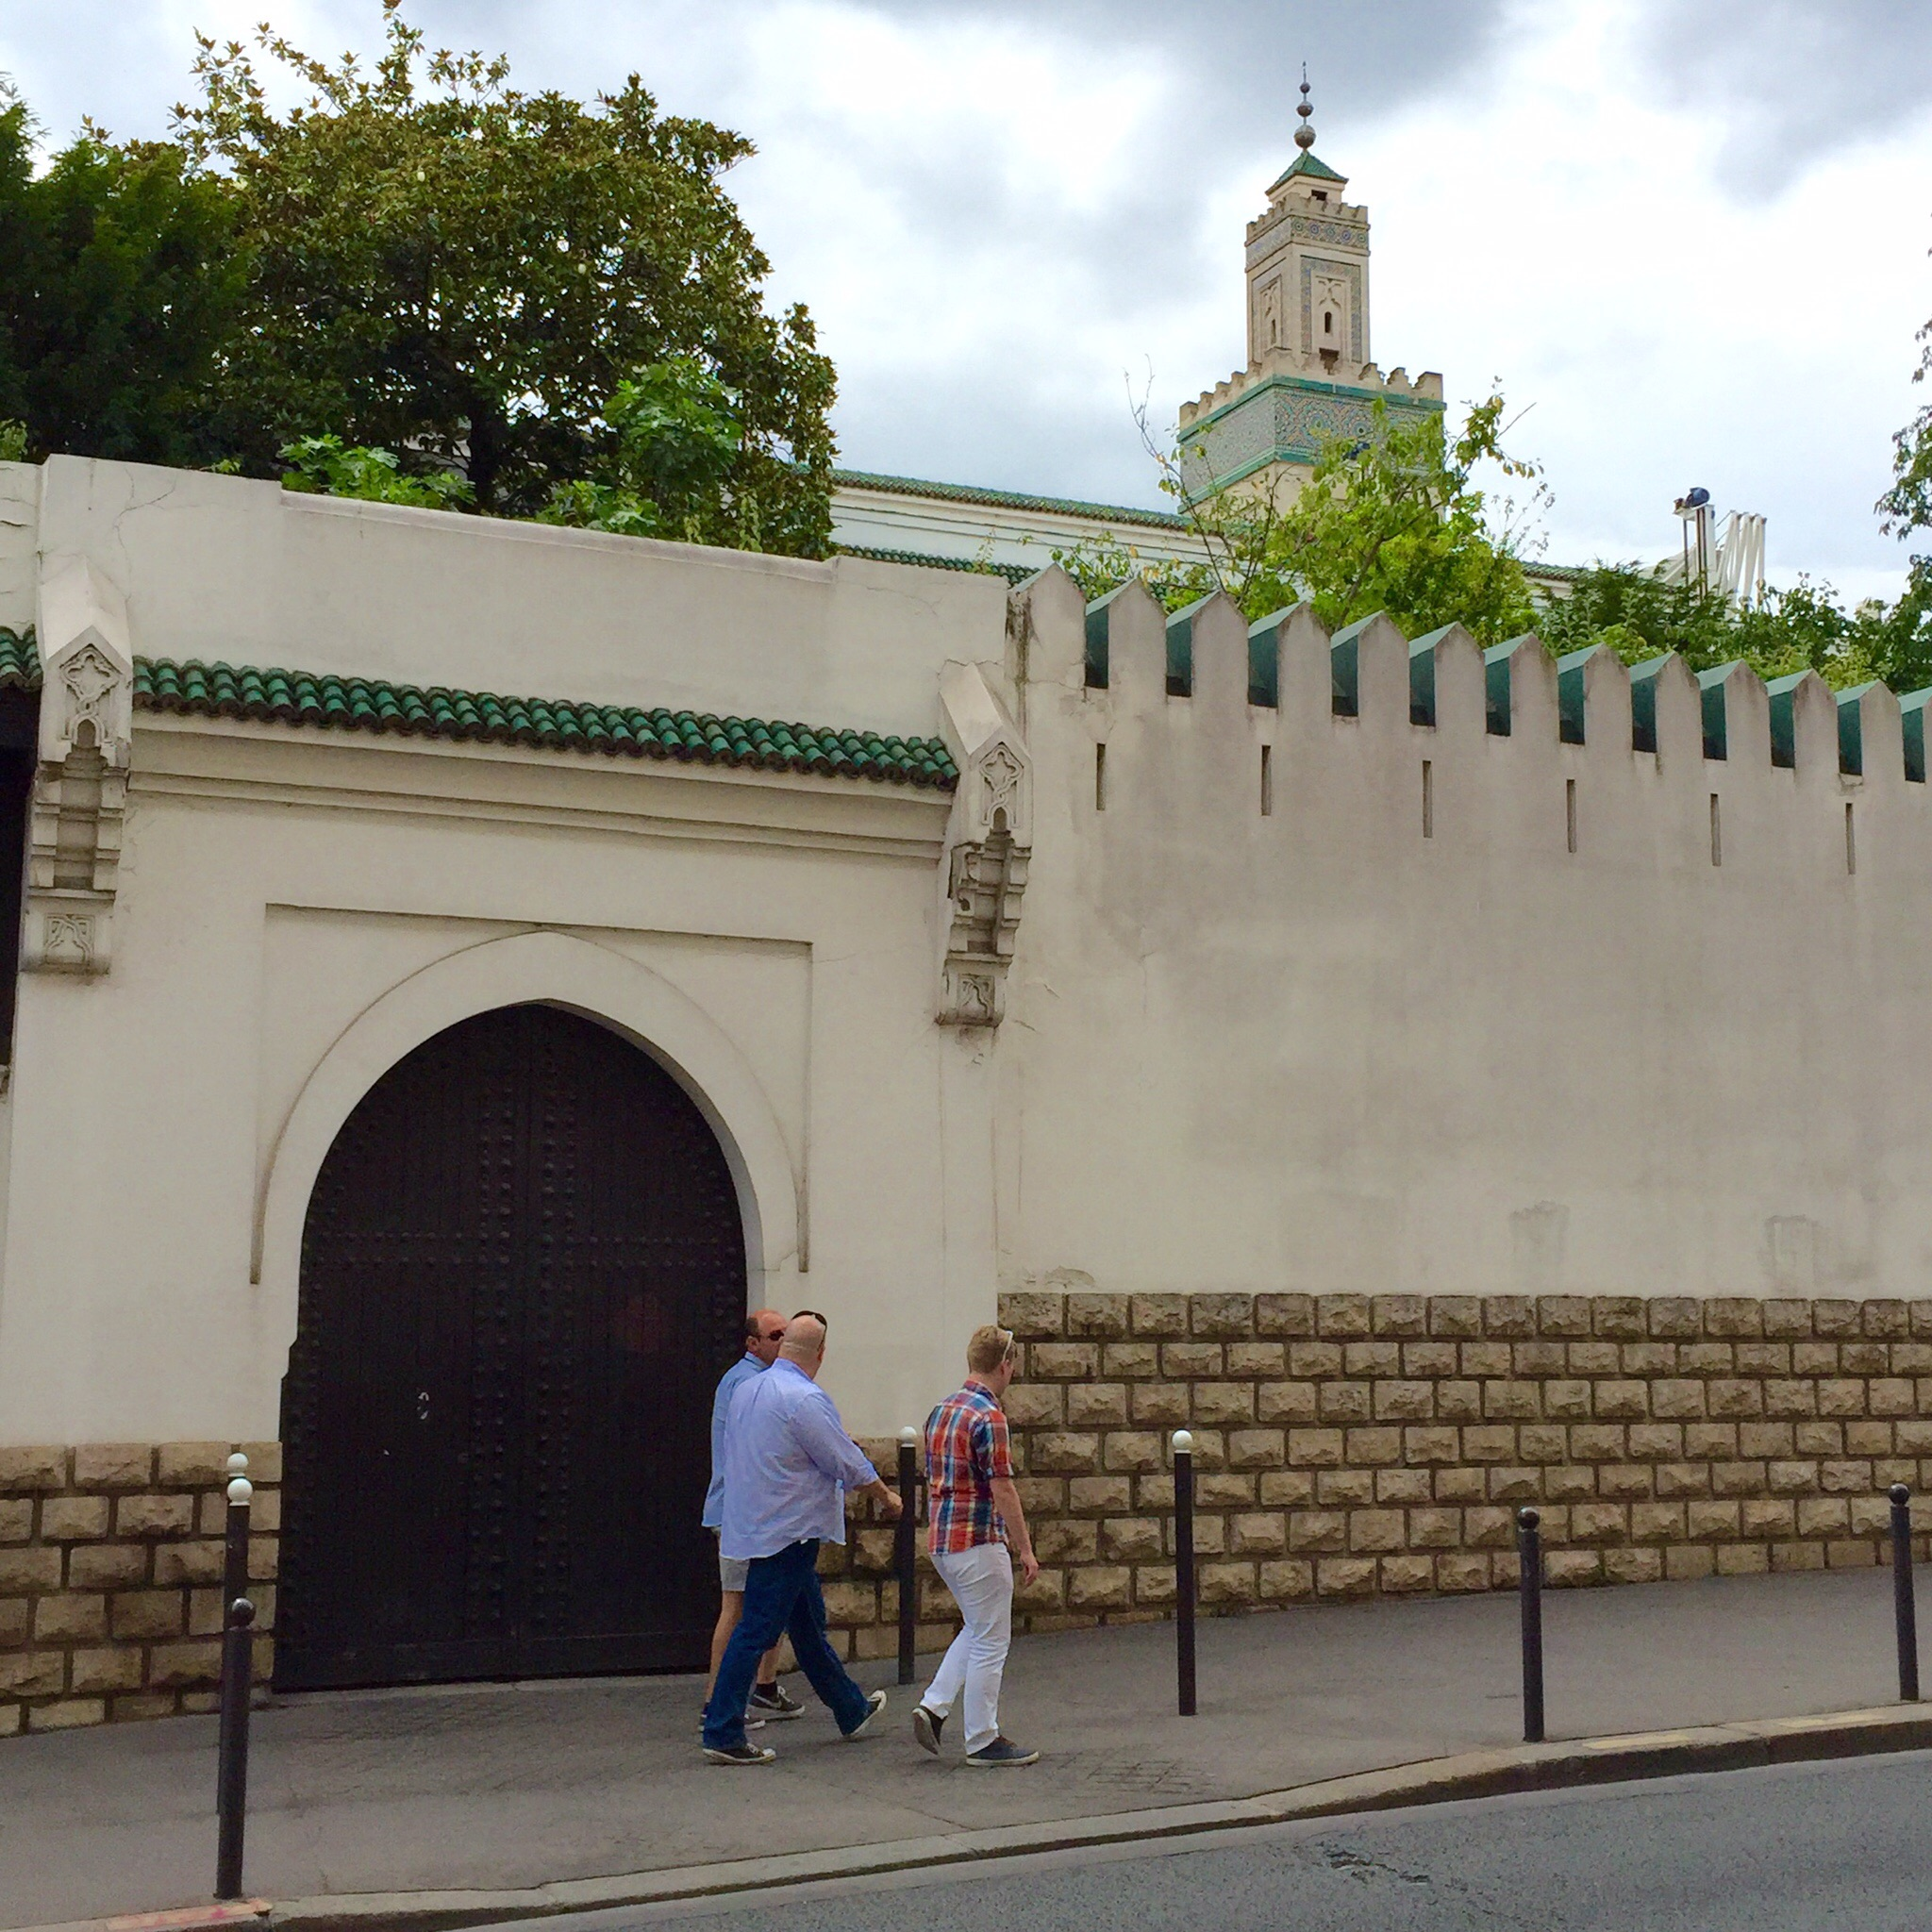 Outside the grand Mosquée de Paris across from the Jardin des Plantes